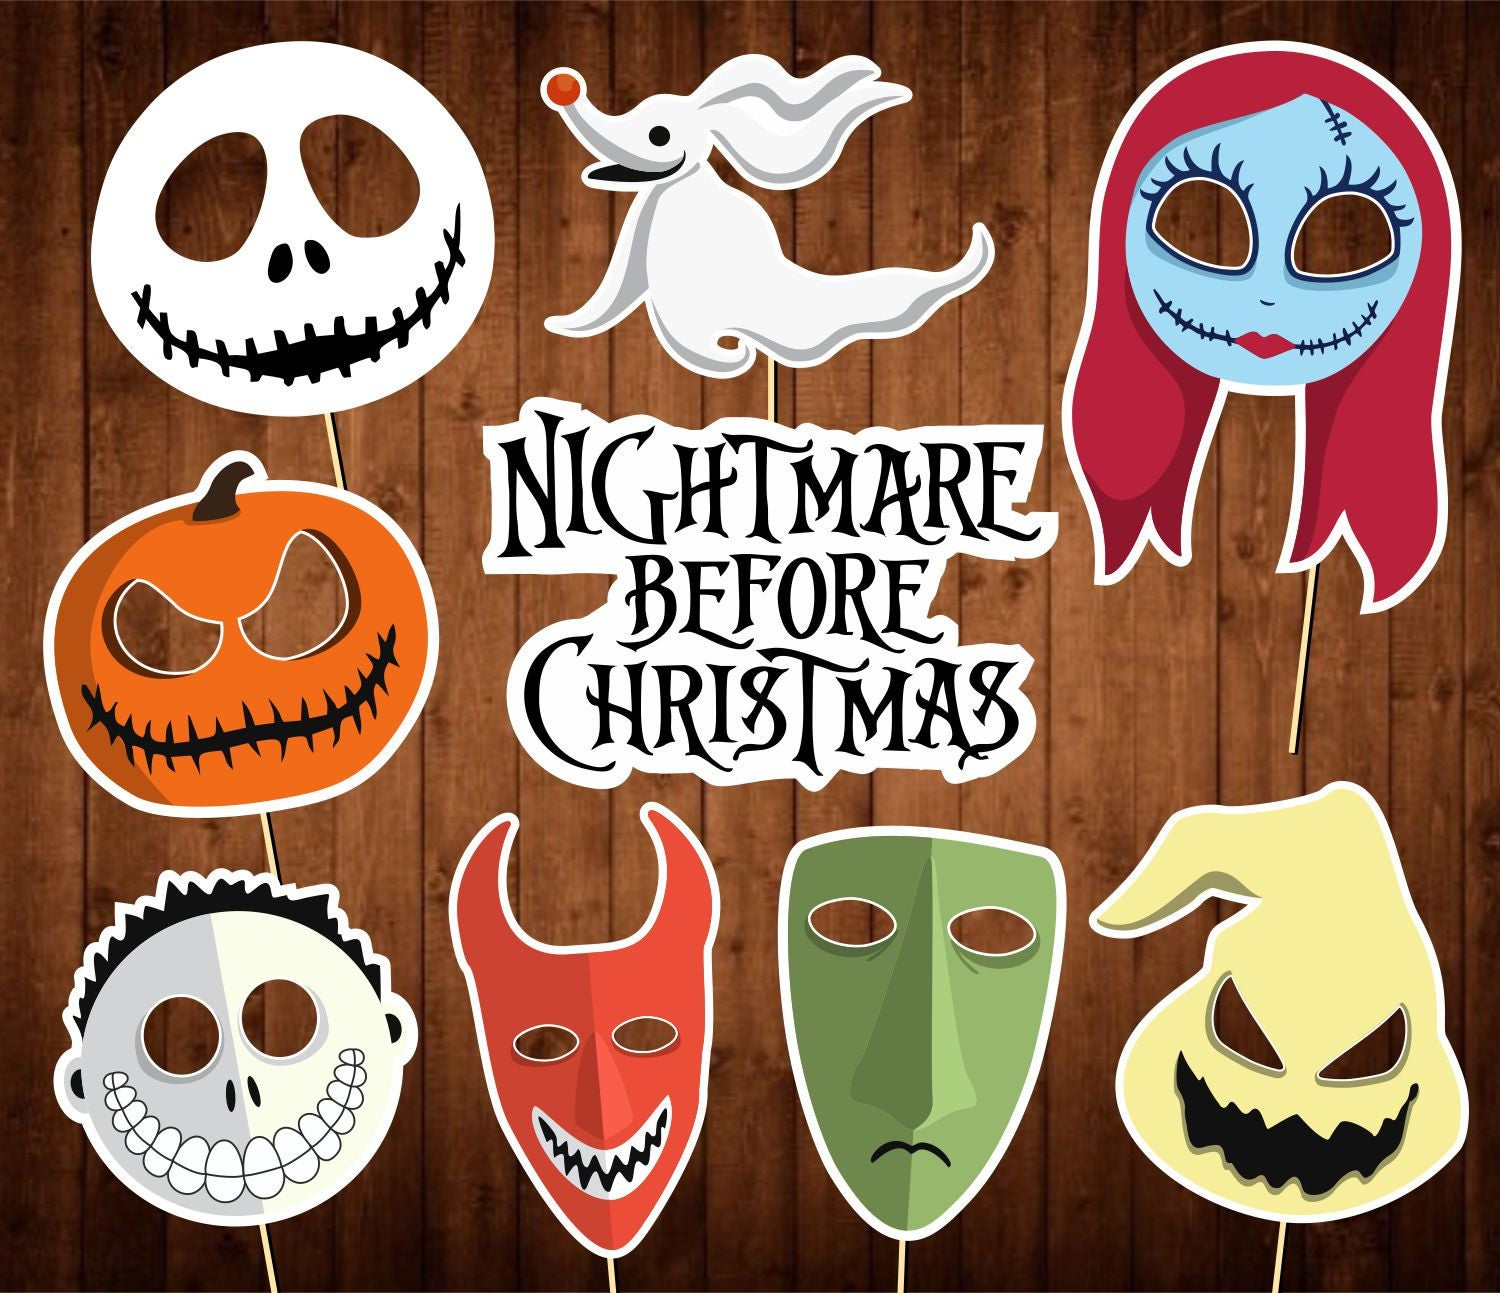 The Nightmare Before Christmas Photo Booth Props Printable | Etsy